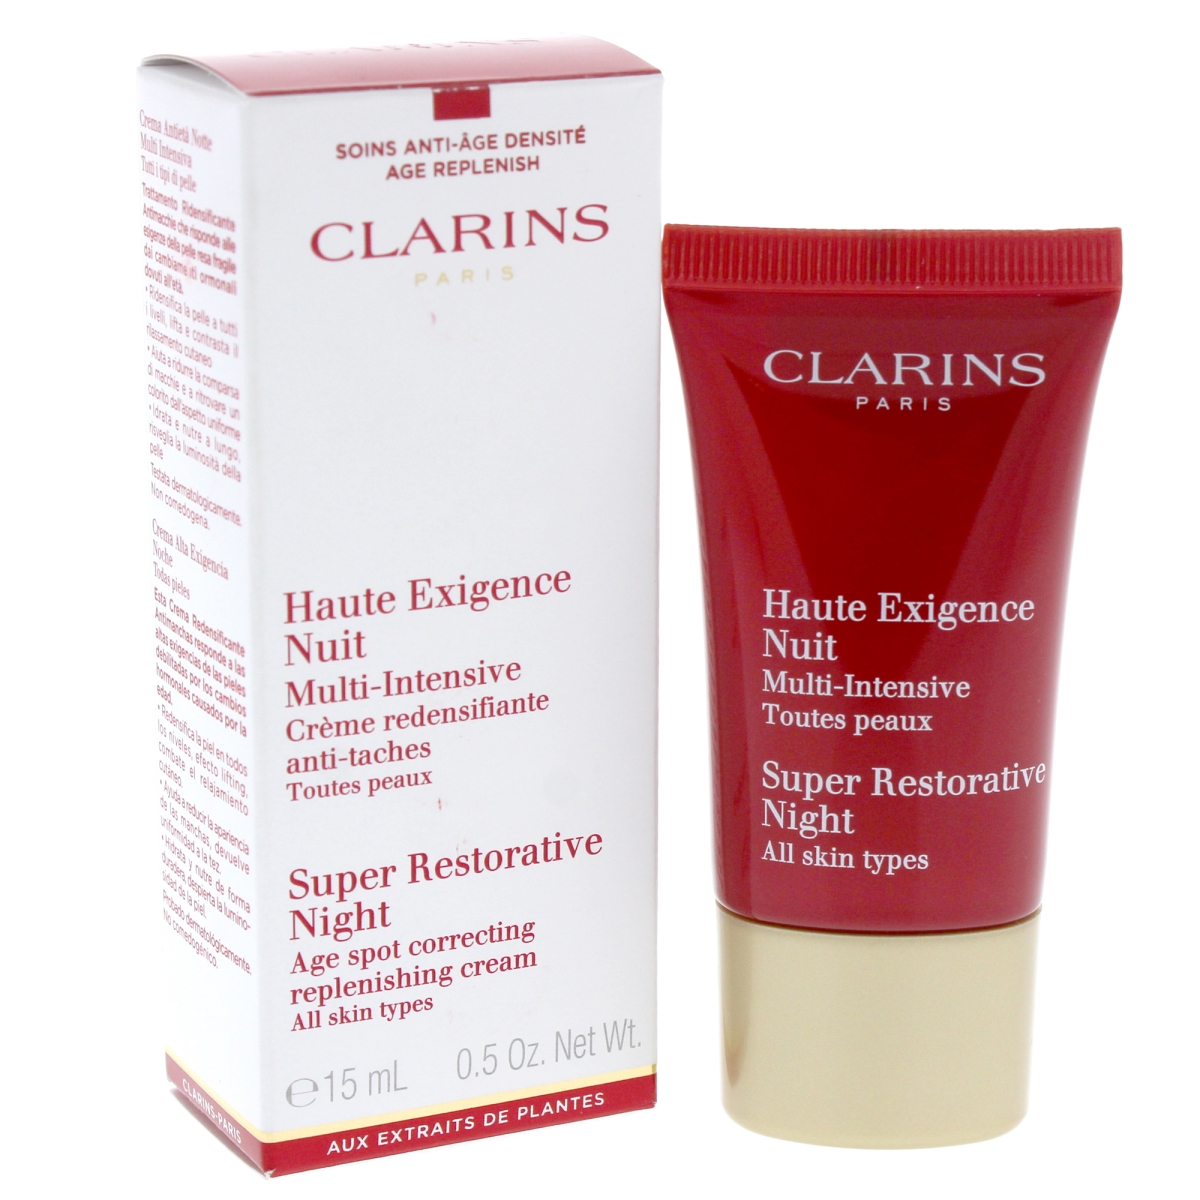 Clarins U-SC-4659 Super Restorative 0.5 oz Night Cream for Unisex